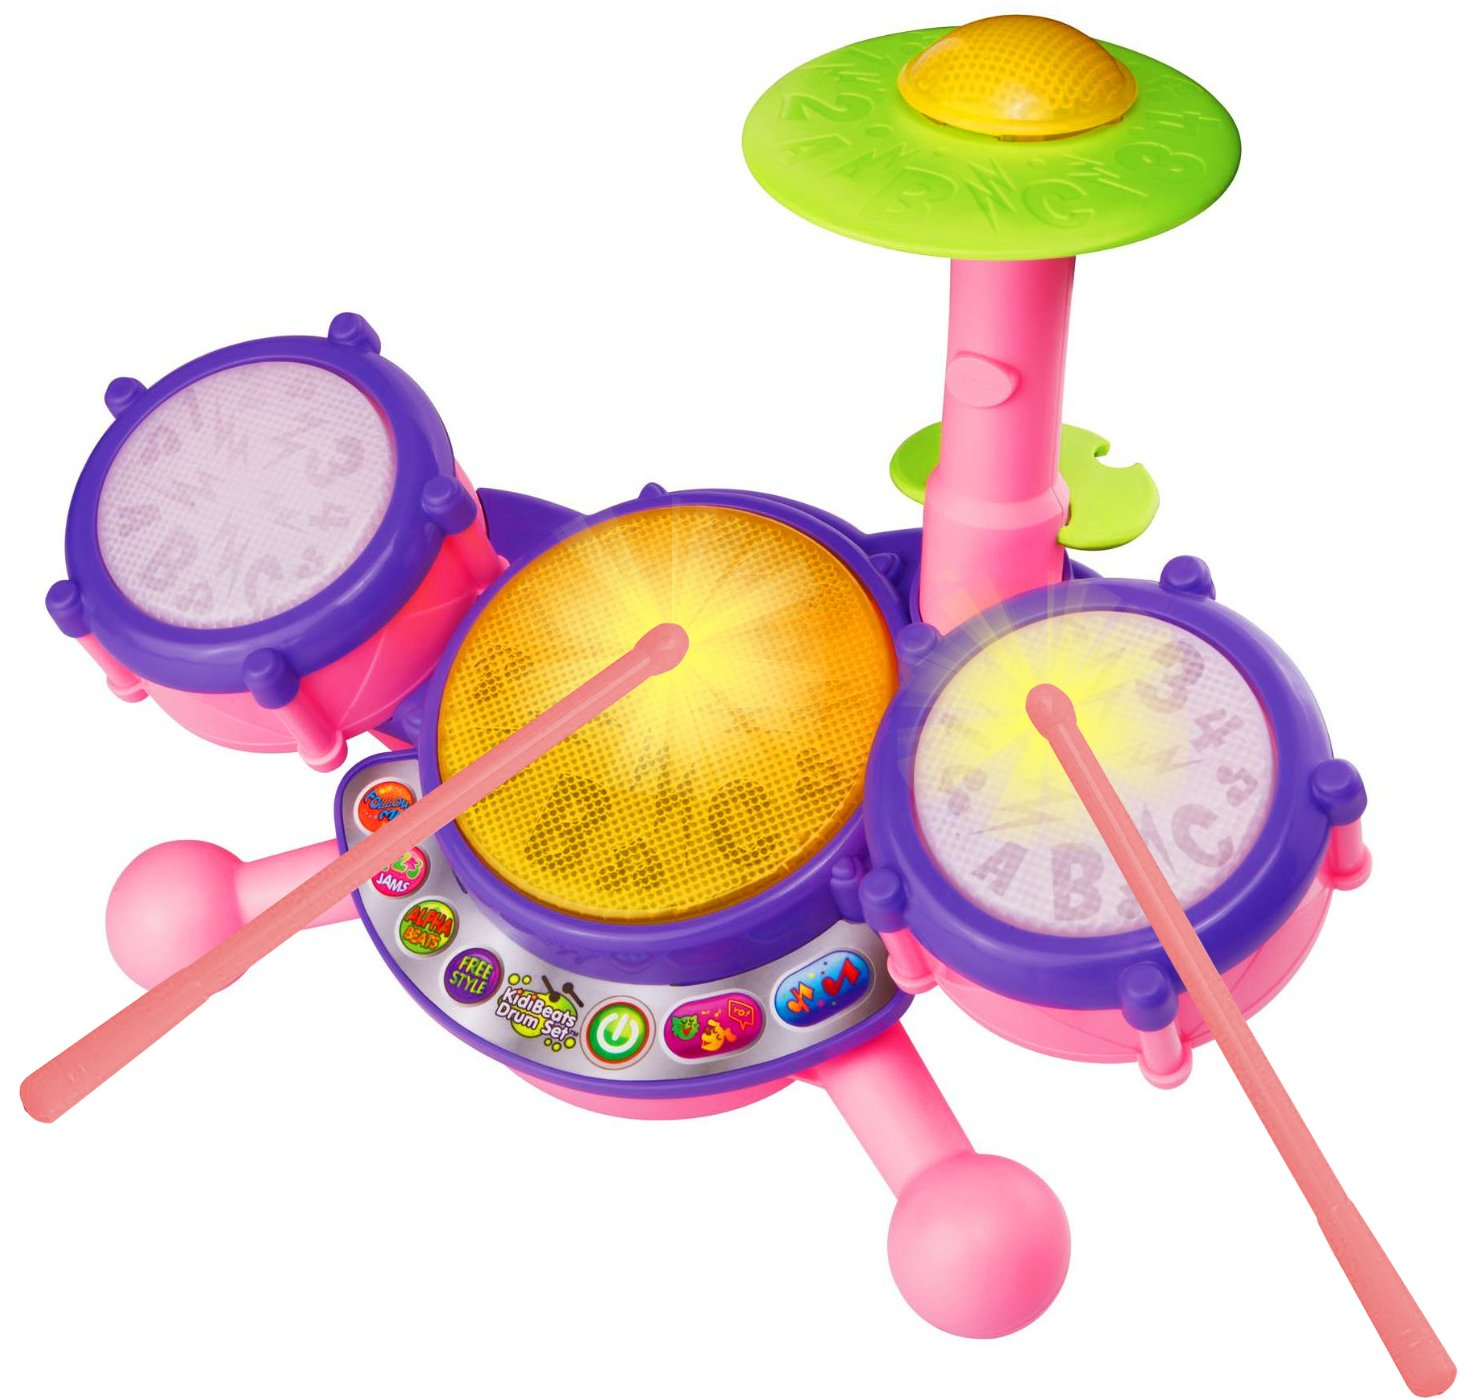 Amazon VTech KidiBeats Drum Set Pink line Exclusive